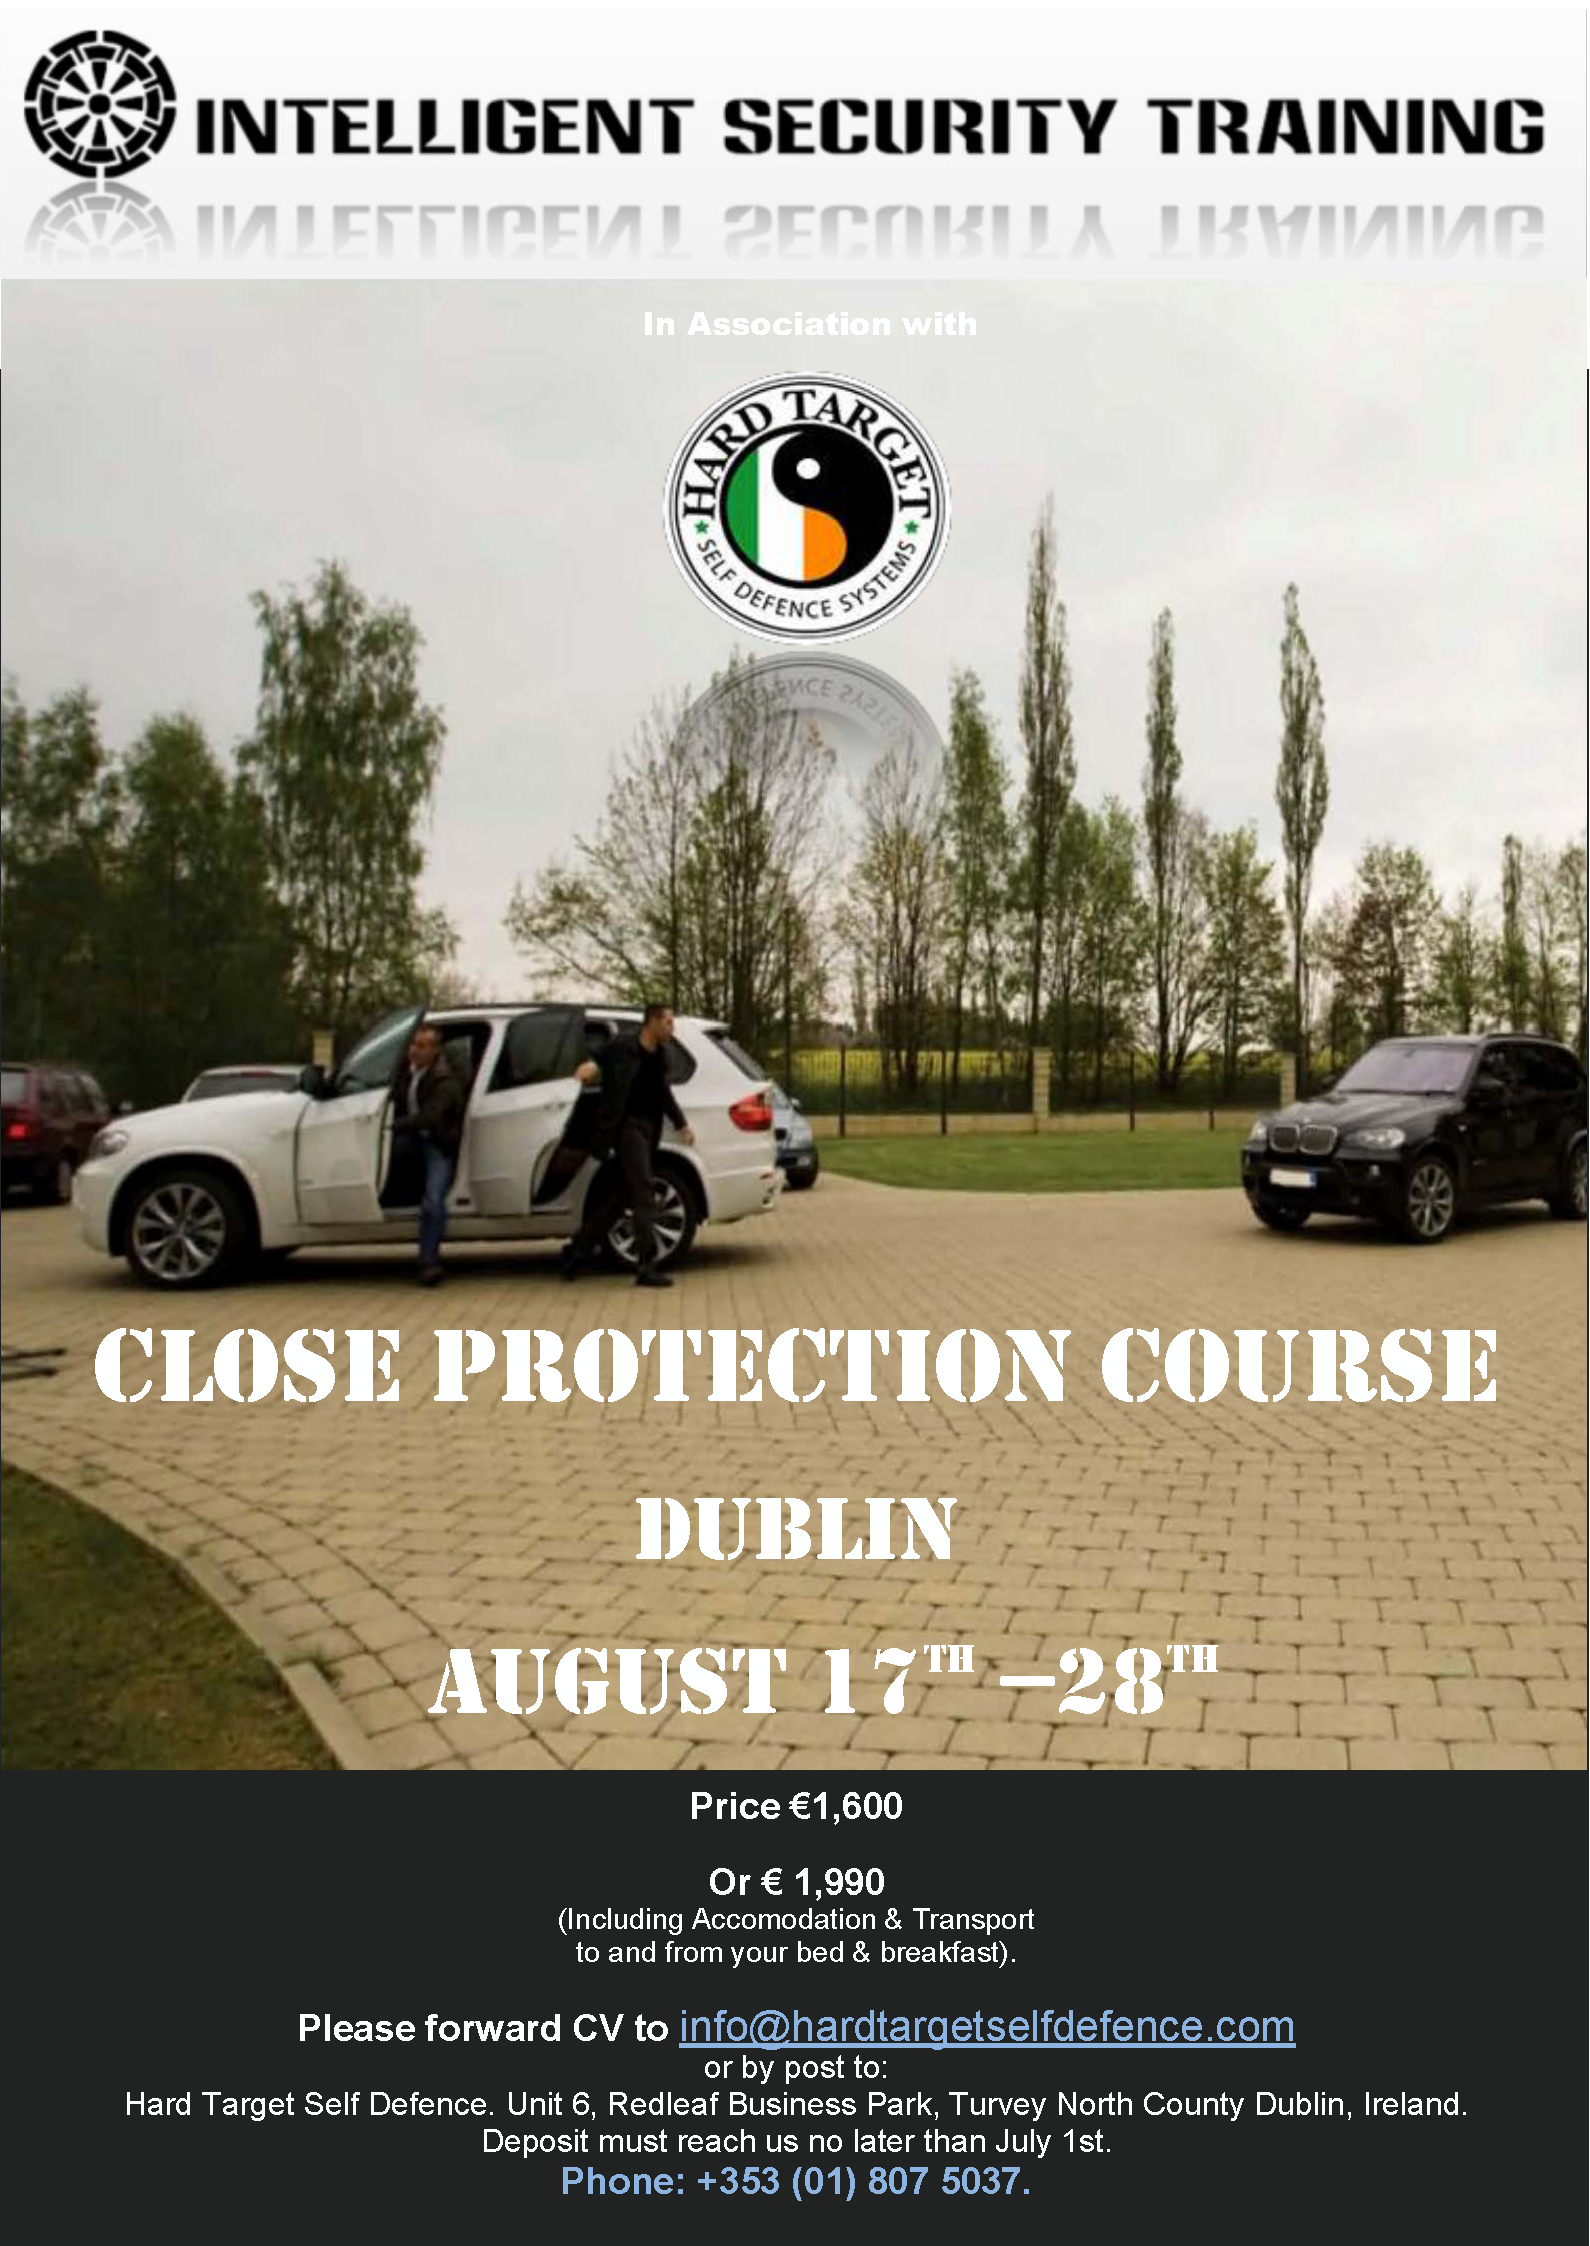 CLOSE PROTECTION COURSE - BODY GUARD TRAINING August 17th - 28th Page 01